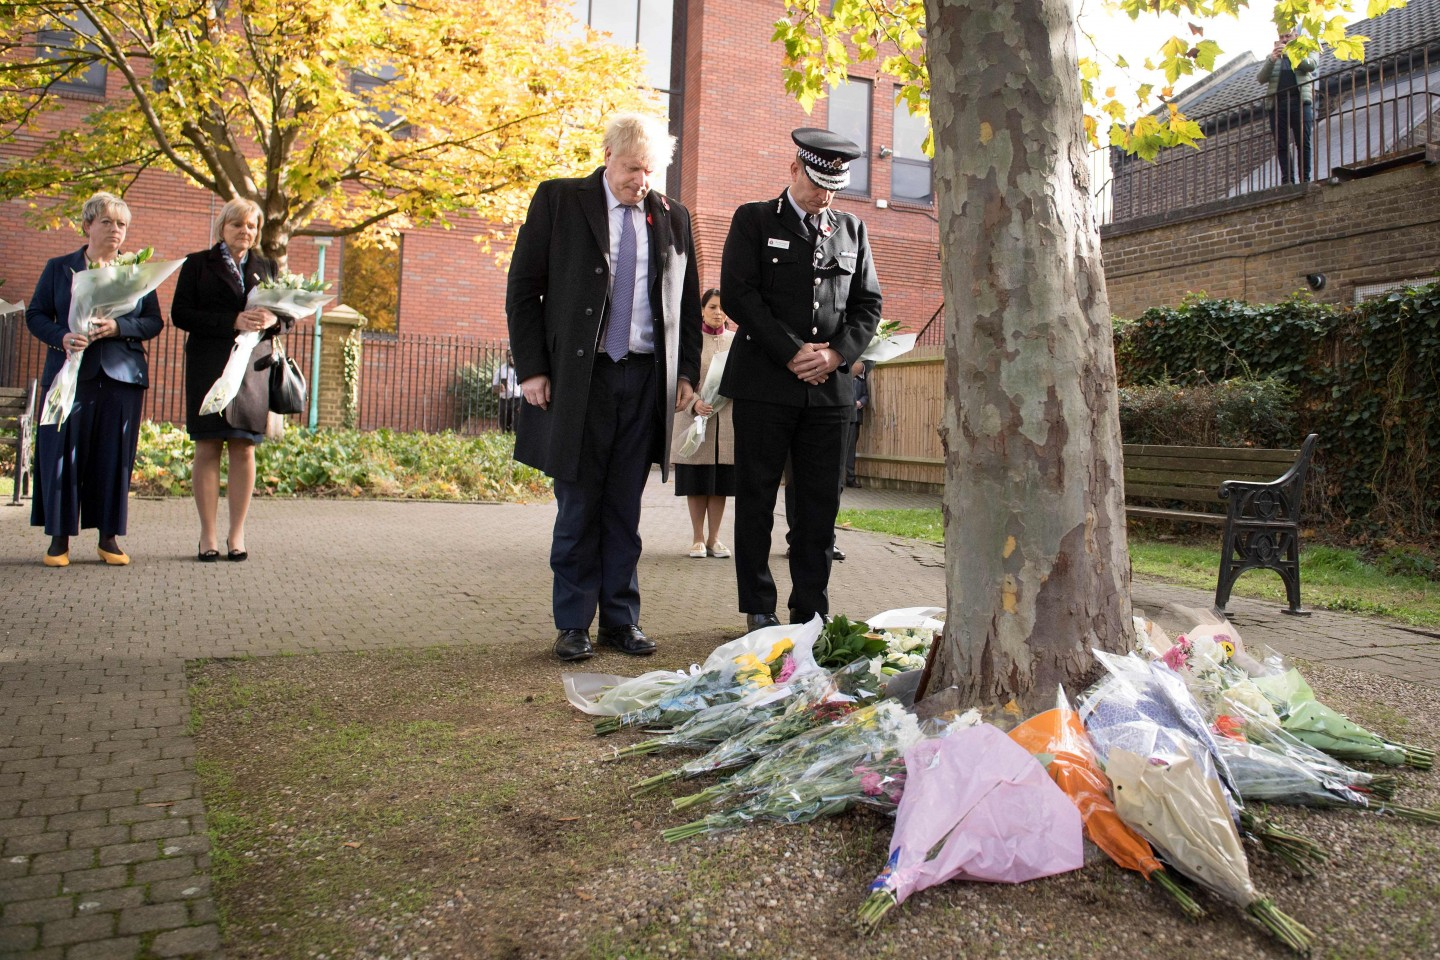 Britain's Prime Minister Boris Johnson stands with Chief Constable of Essex Police, Ben-Julian Harrington (R), after they laid flowers, during a visit to Thurrock Council Offices in Thurrock, east of London on October 28, 2019, following the October 23, 2019, discovery of 39 bodies concealed in a lorry. - British police investigating the deaths of 39 people in a refrigerated truck charged the driver on Saturday with manslaughter and people trafficking, as families in Vietnam expressed fear their loved ones were among the dead. (Photo by Stefan Rousseau / POOL / AFP)